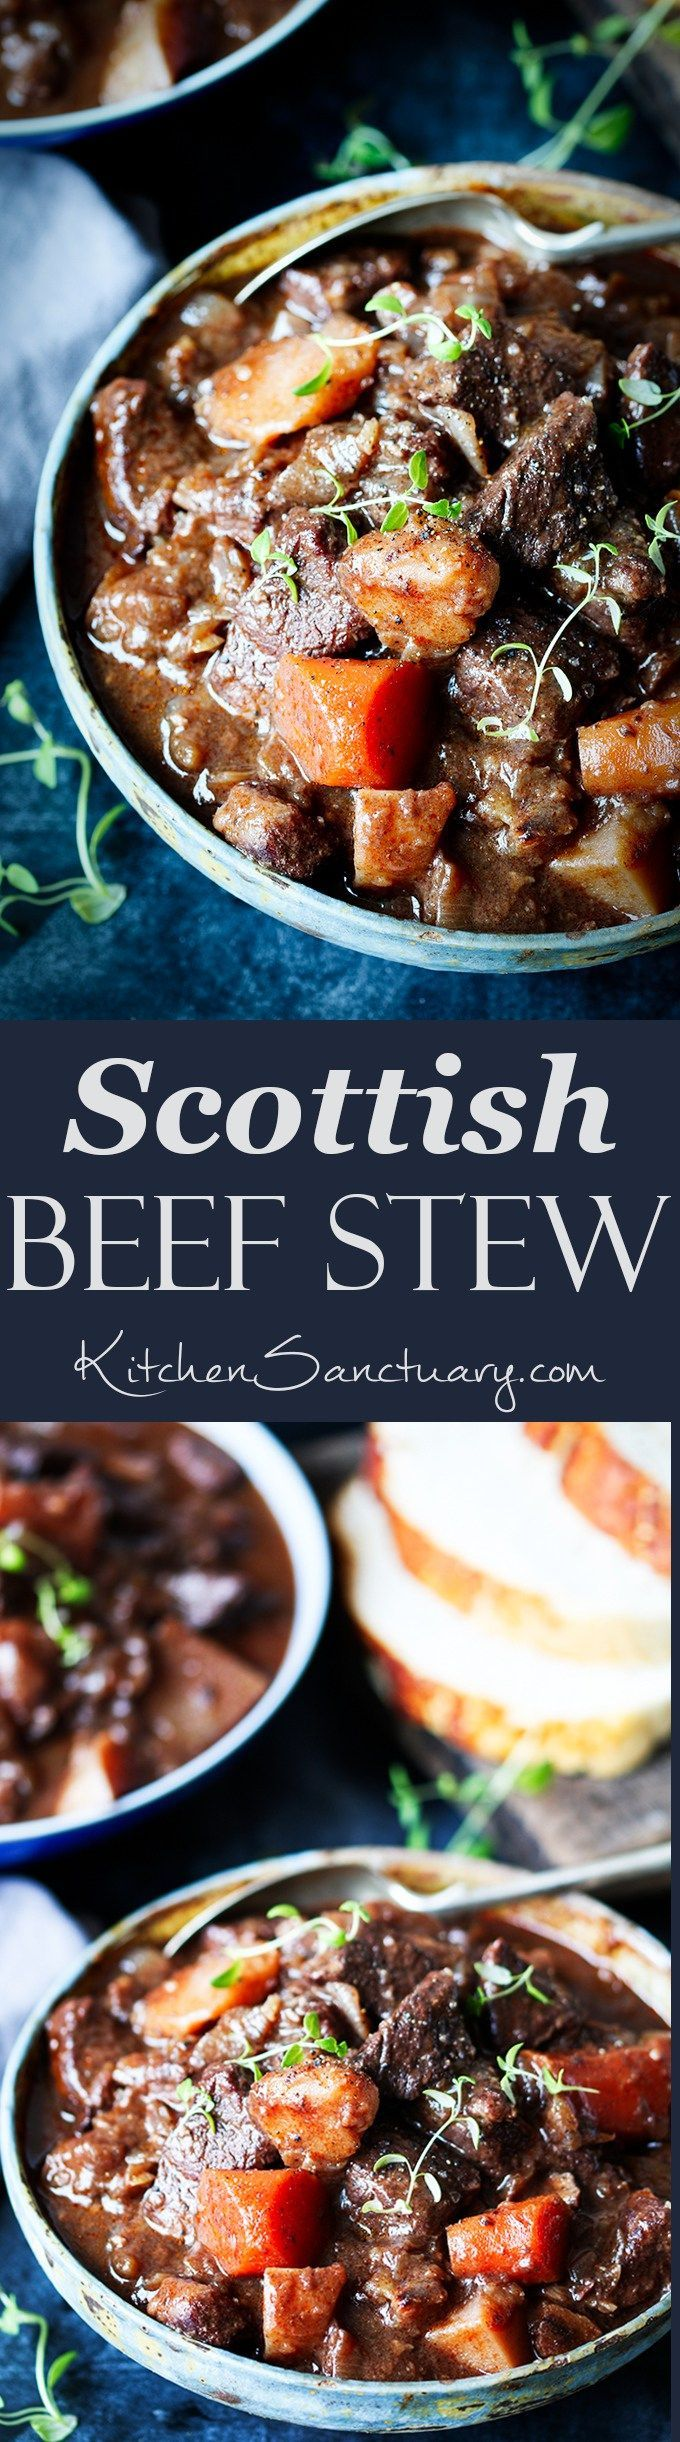 4338 best top uk food blog recipes images on pinterest easy scottish beef stew cooked in the oven or crockpot perfect for burns night forumfinder Choice Image